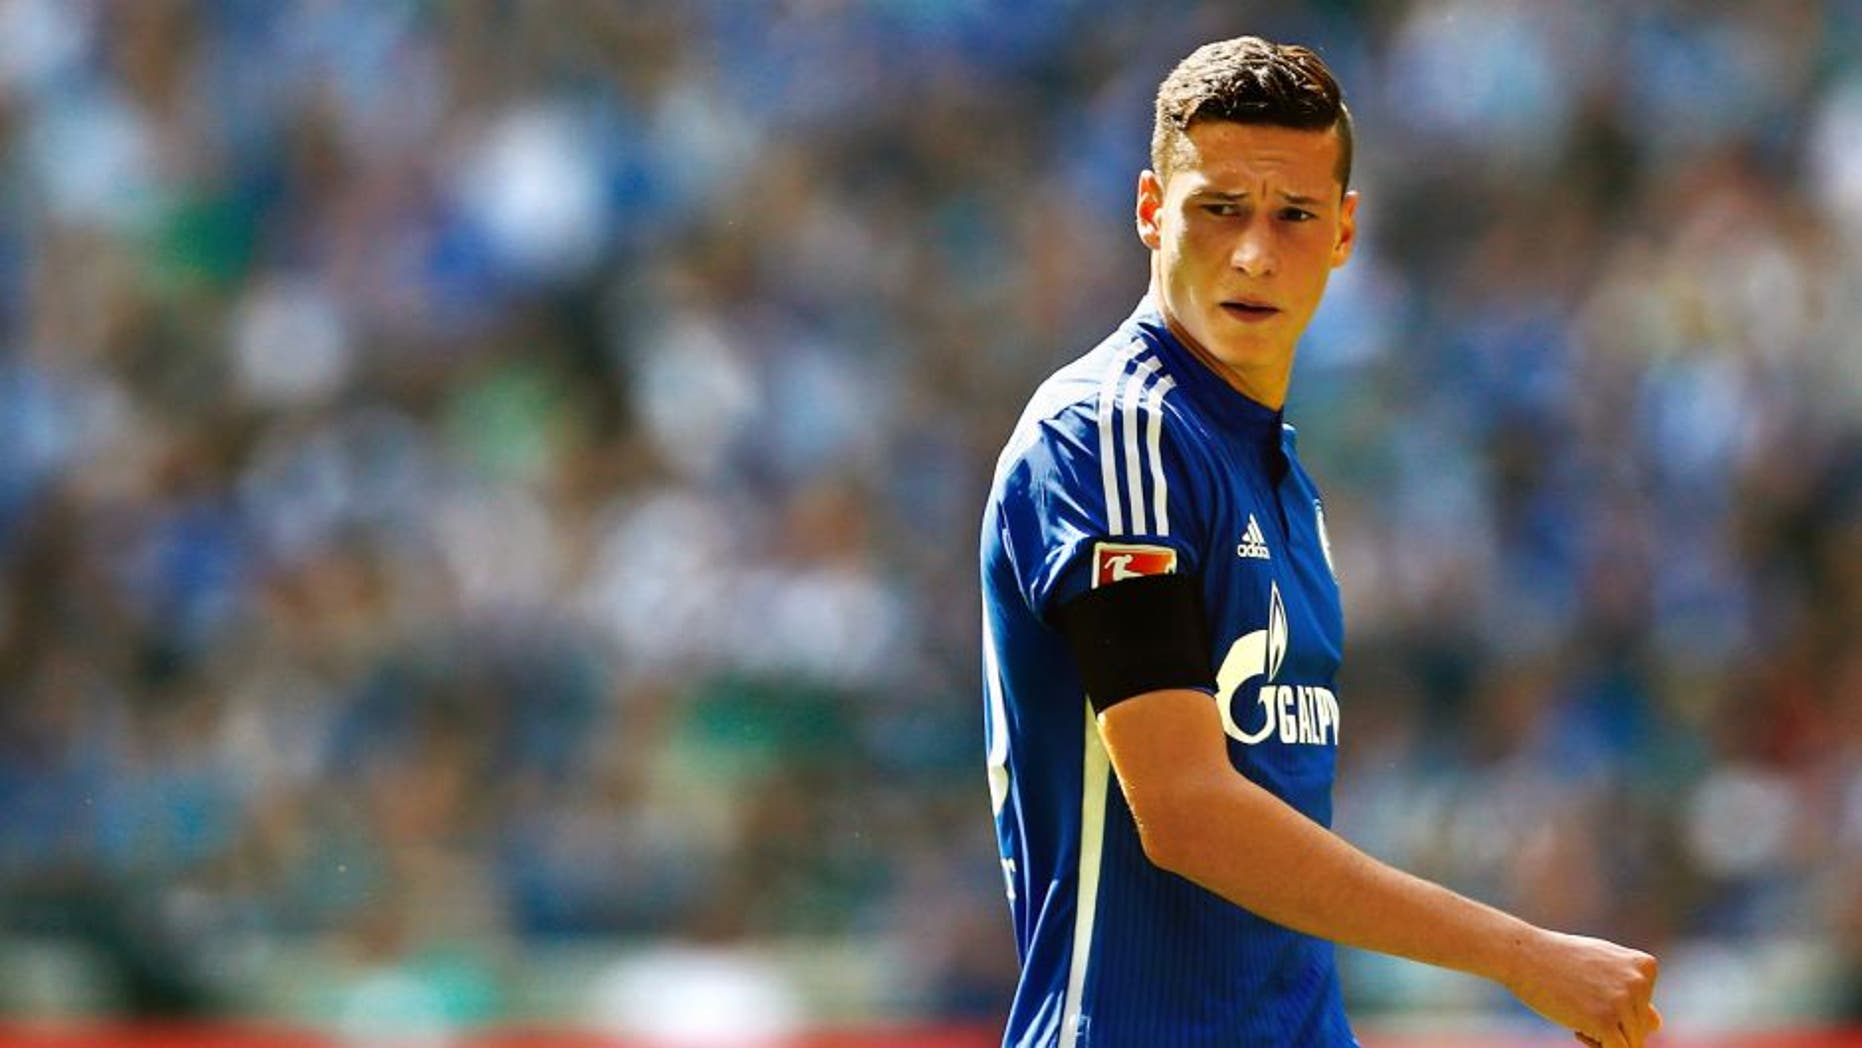 GELSENKIRCHEN, GERMANY - AUGUST 22: Julian Draxler of Schalke looks on during the Bundesliga match between FC Schalke 04 and SV Darmstadt 98 held at Veltins-Arena on August 22, 2015 in Gelsenkirchen, Germany. (Photo by Dean Mouhtaropoulos/Bongarts/Getty Images)